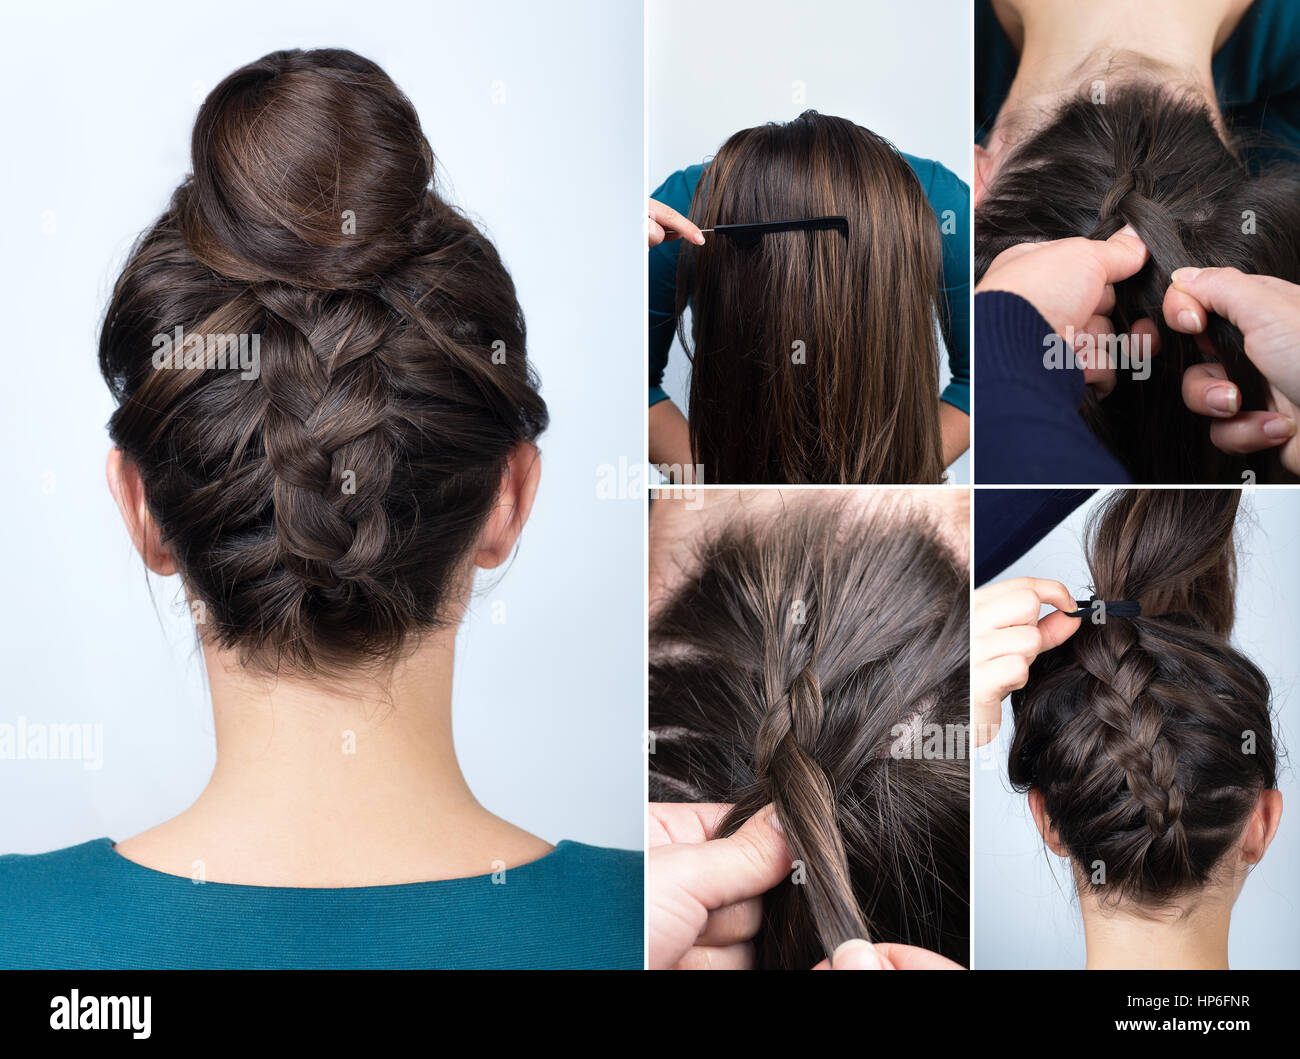 Modern Hairstyle Reverse Braided Bun Tutorial For Long Hair Upside Down French Braid With